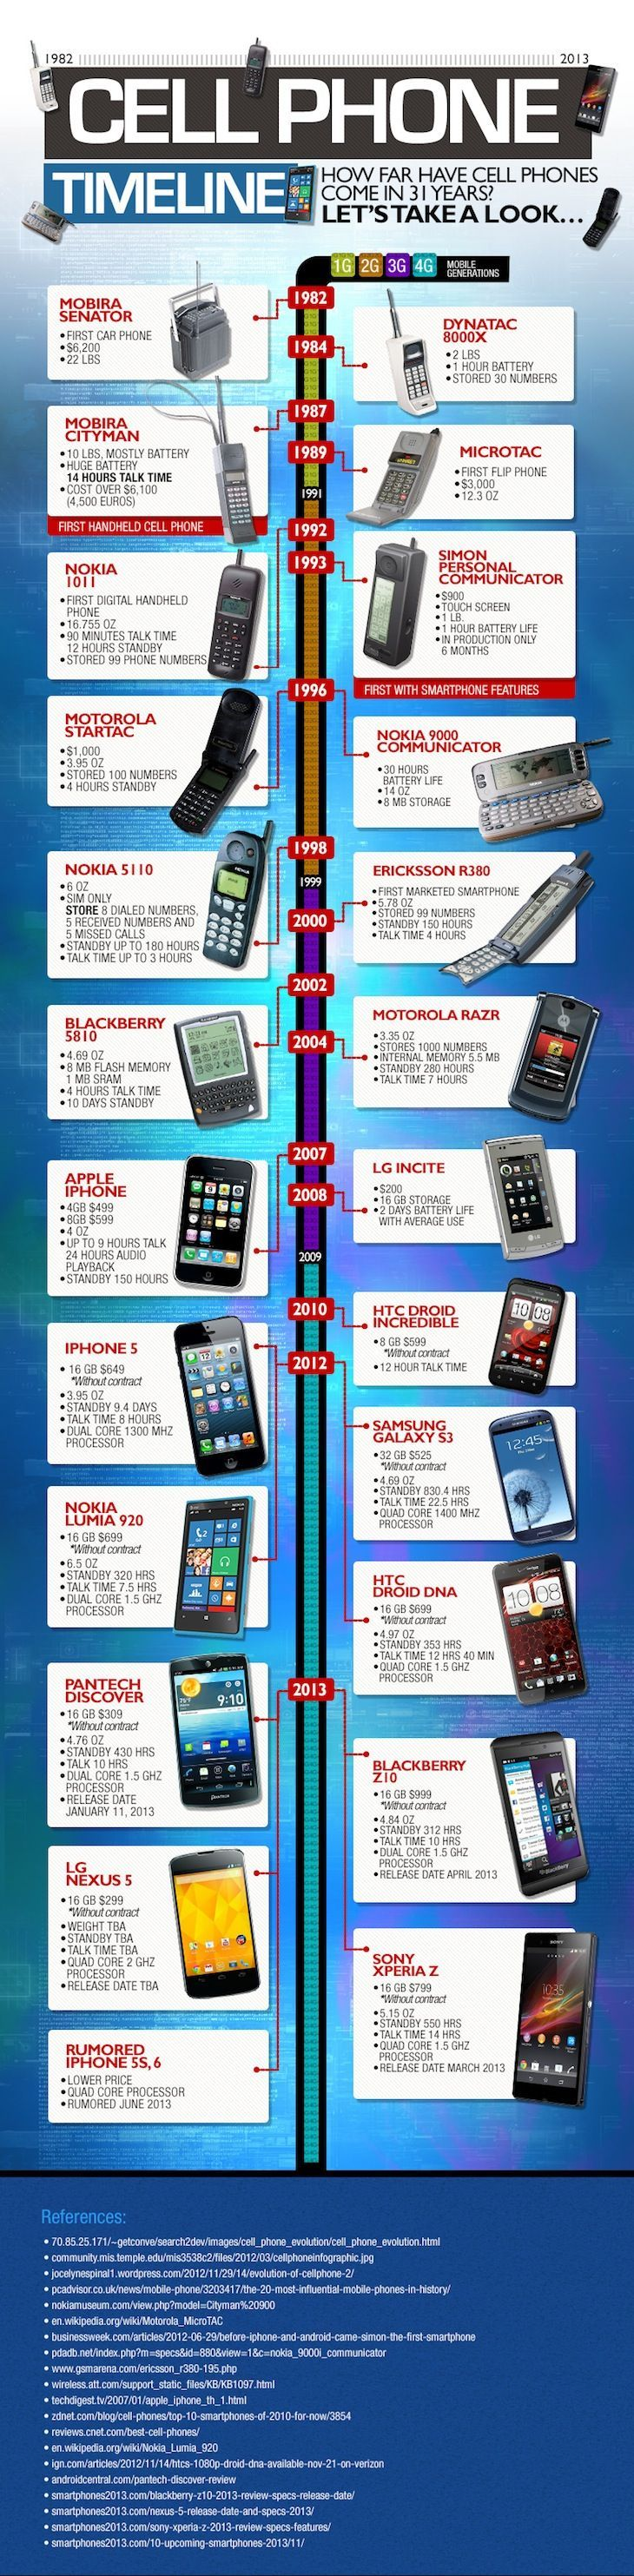 cell phone timeline 1 how far mobile phones have come in the past 31 years